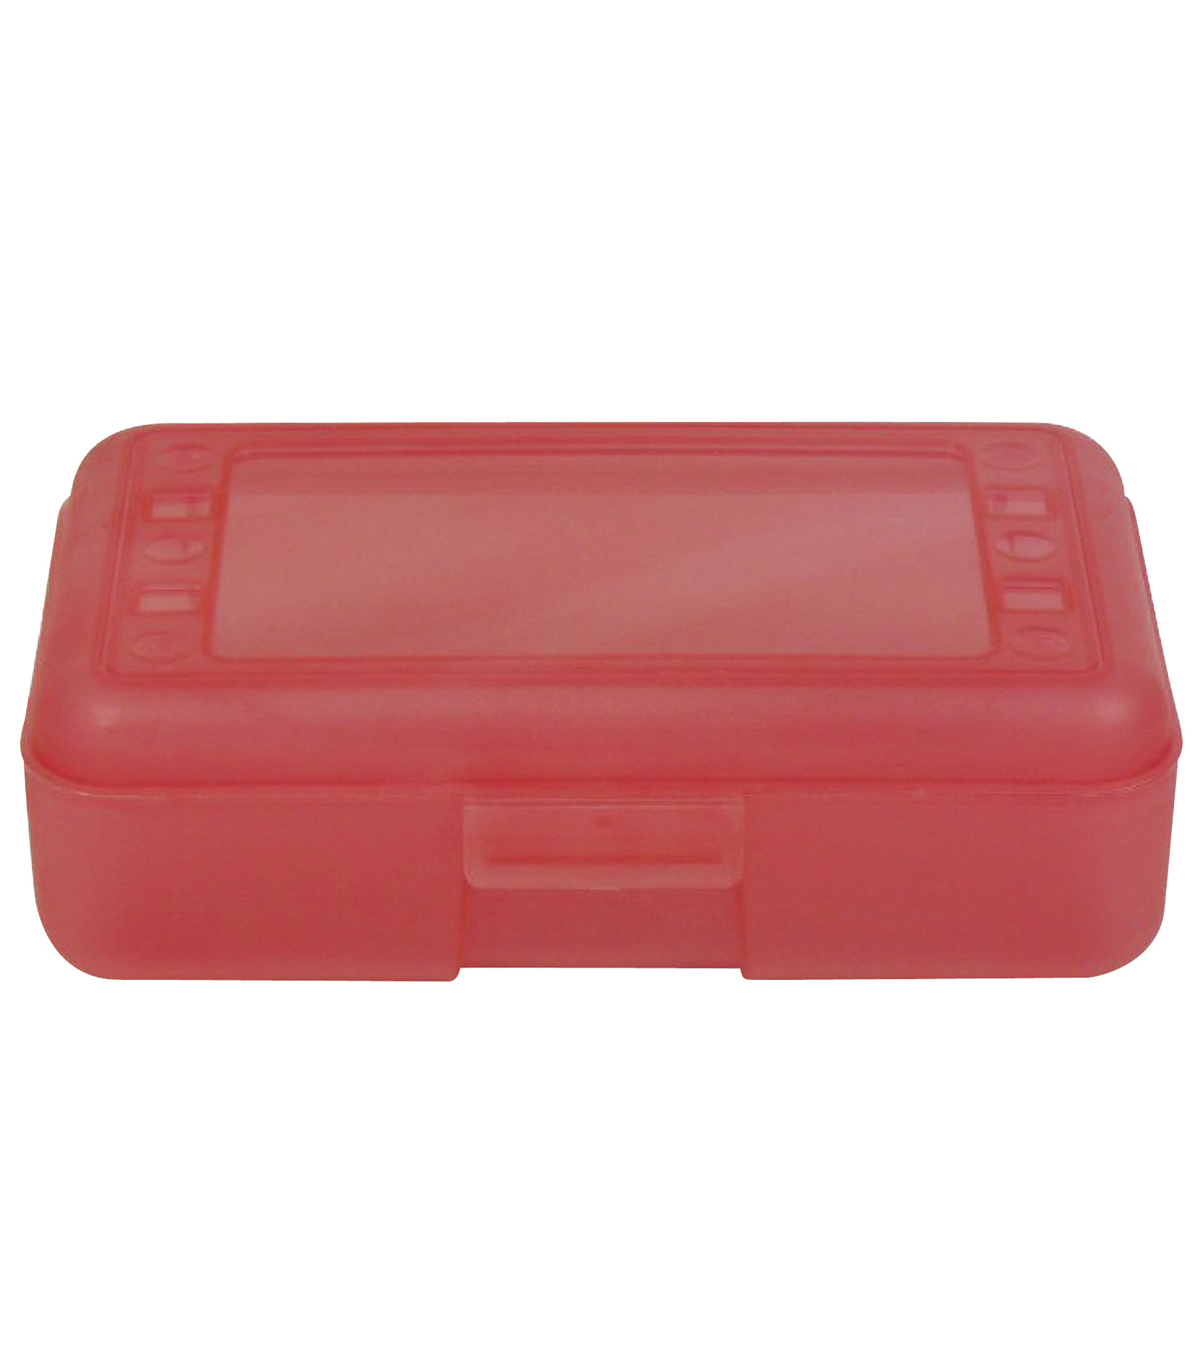 Romanoff Products Pencil Box, Pack of 12, Strawberry